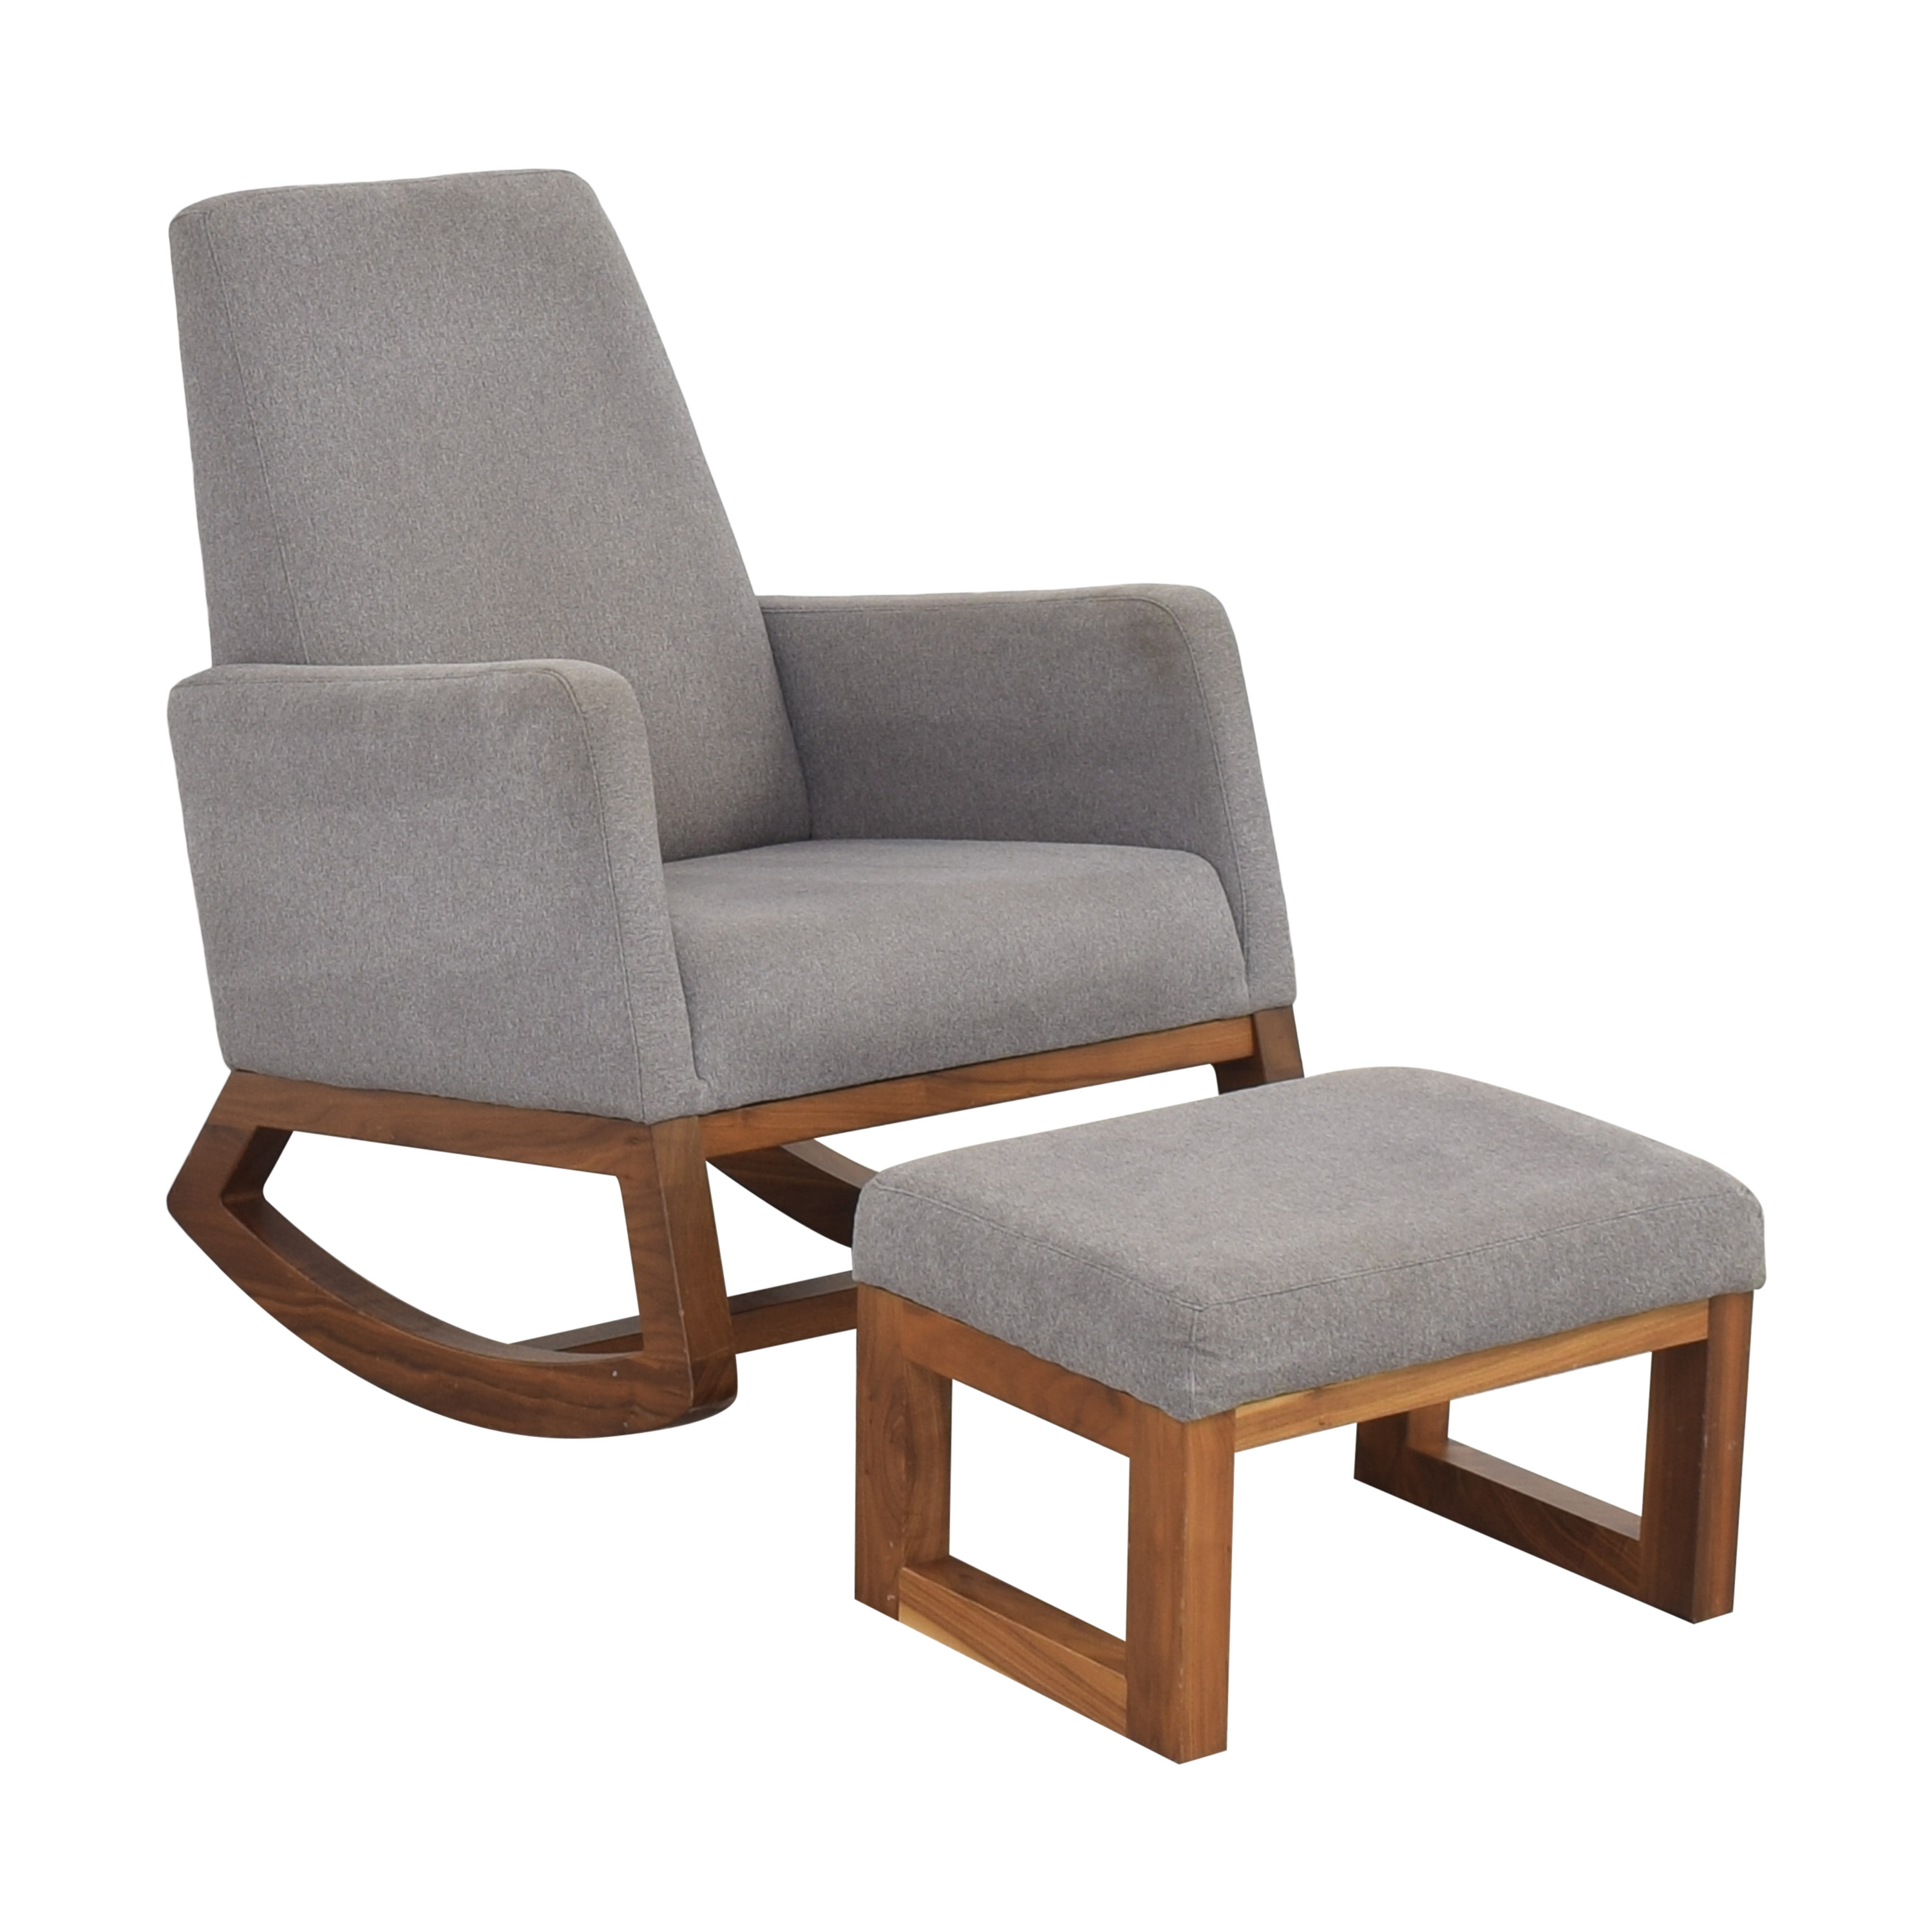 Crate & Barrel Crate & Barrel by Monte Modern Joya Rocking Chair and Ottoman ma